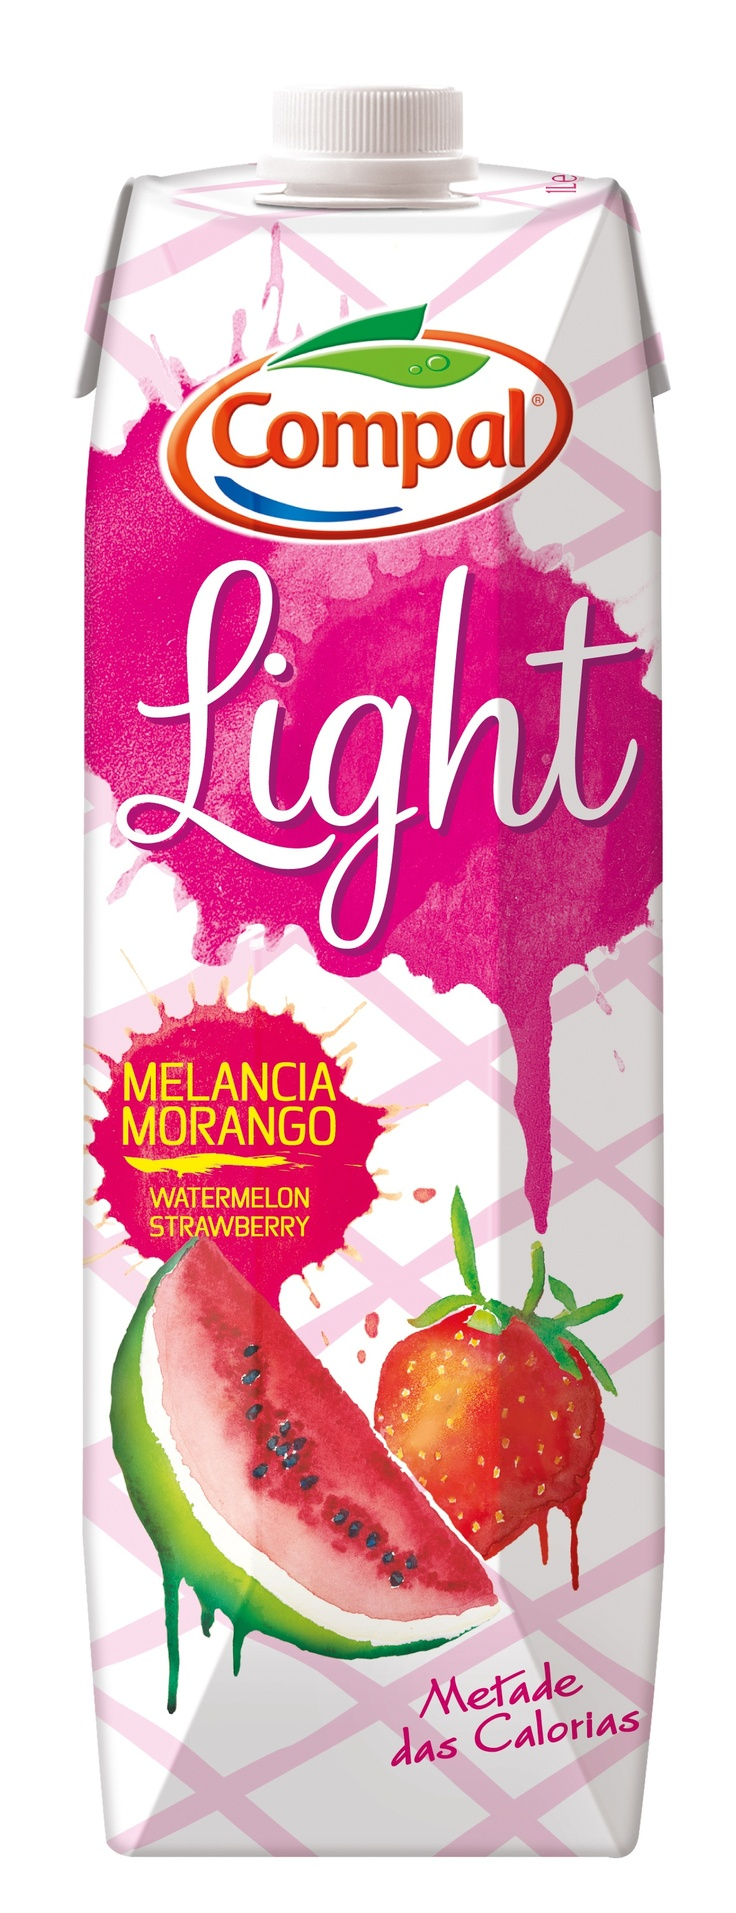 Compal Light Melancia Morango